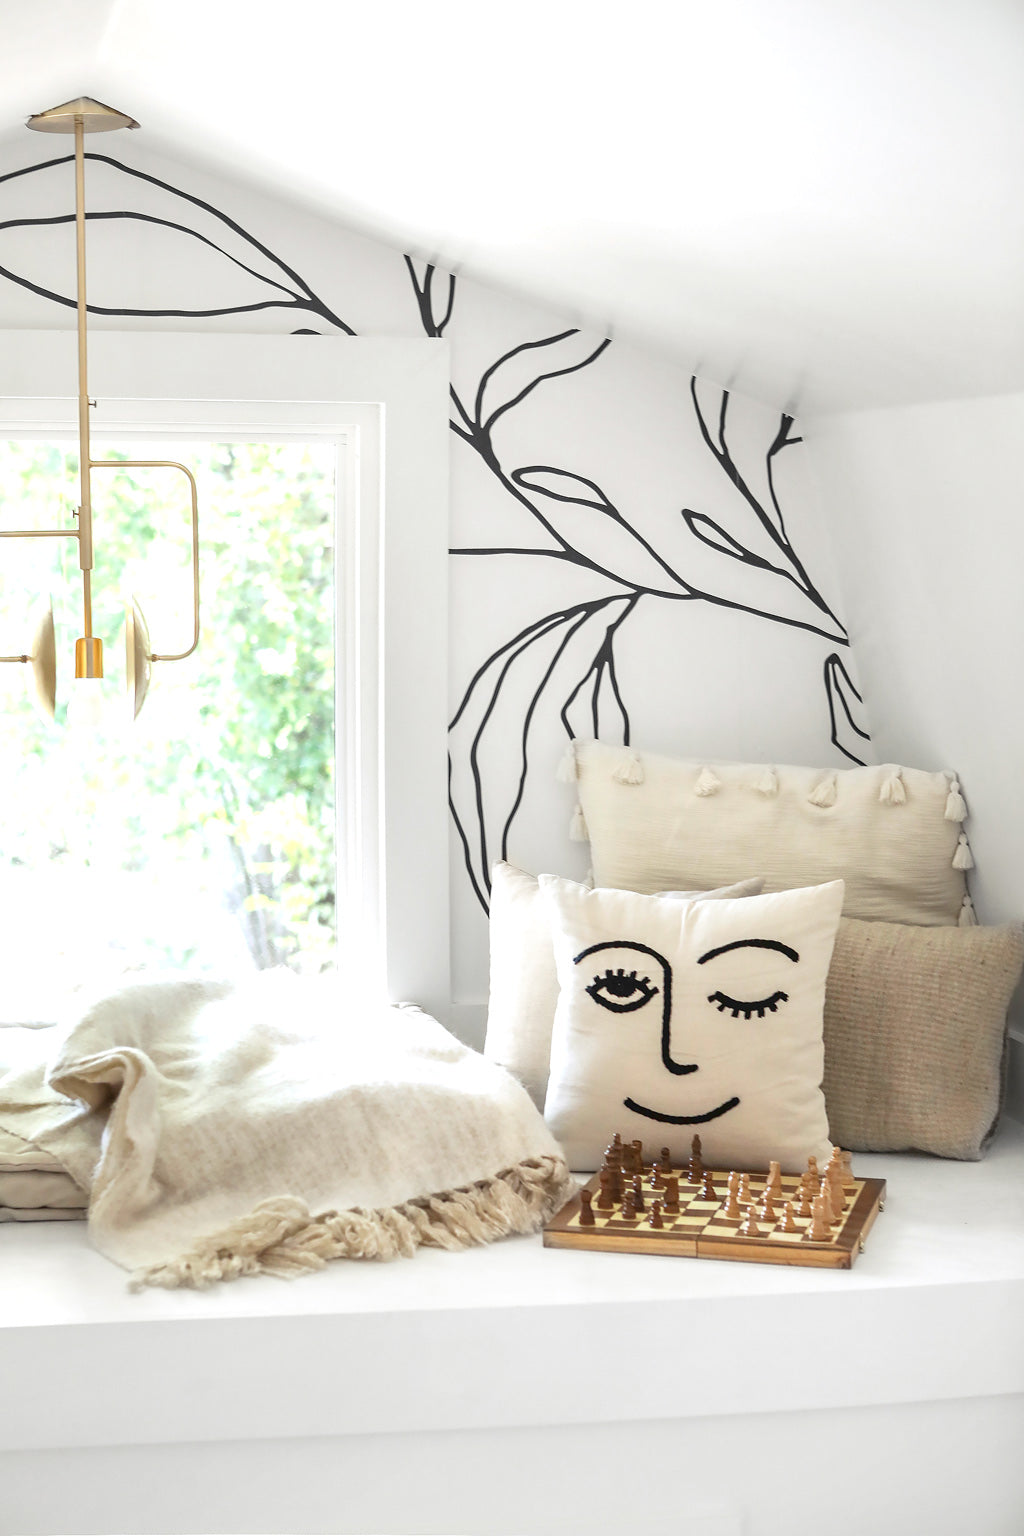 Wallpapered reading nook with cute pillows and wall mural